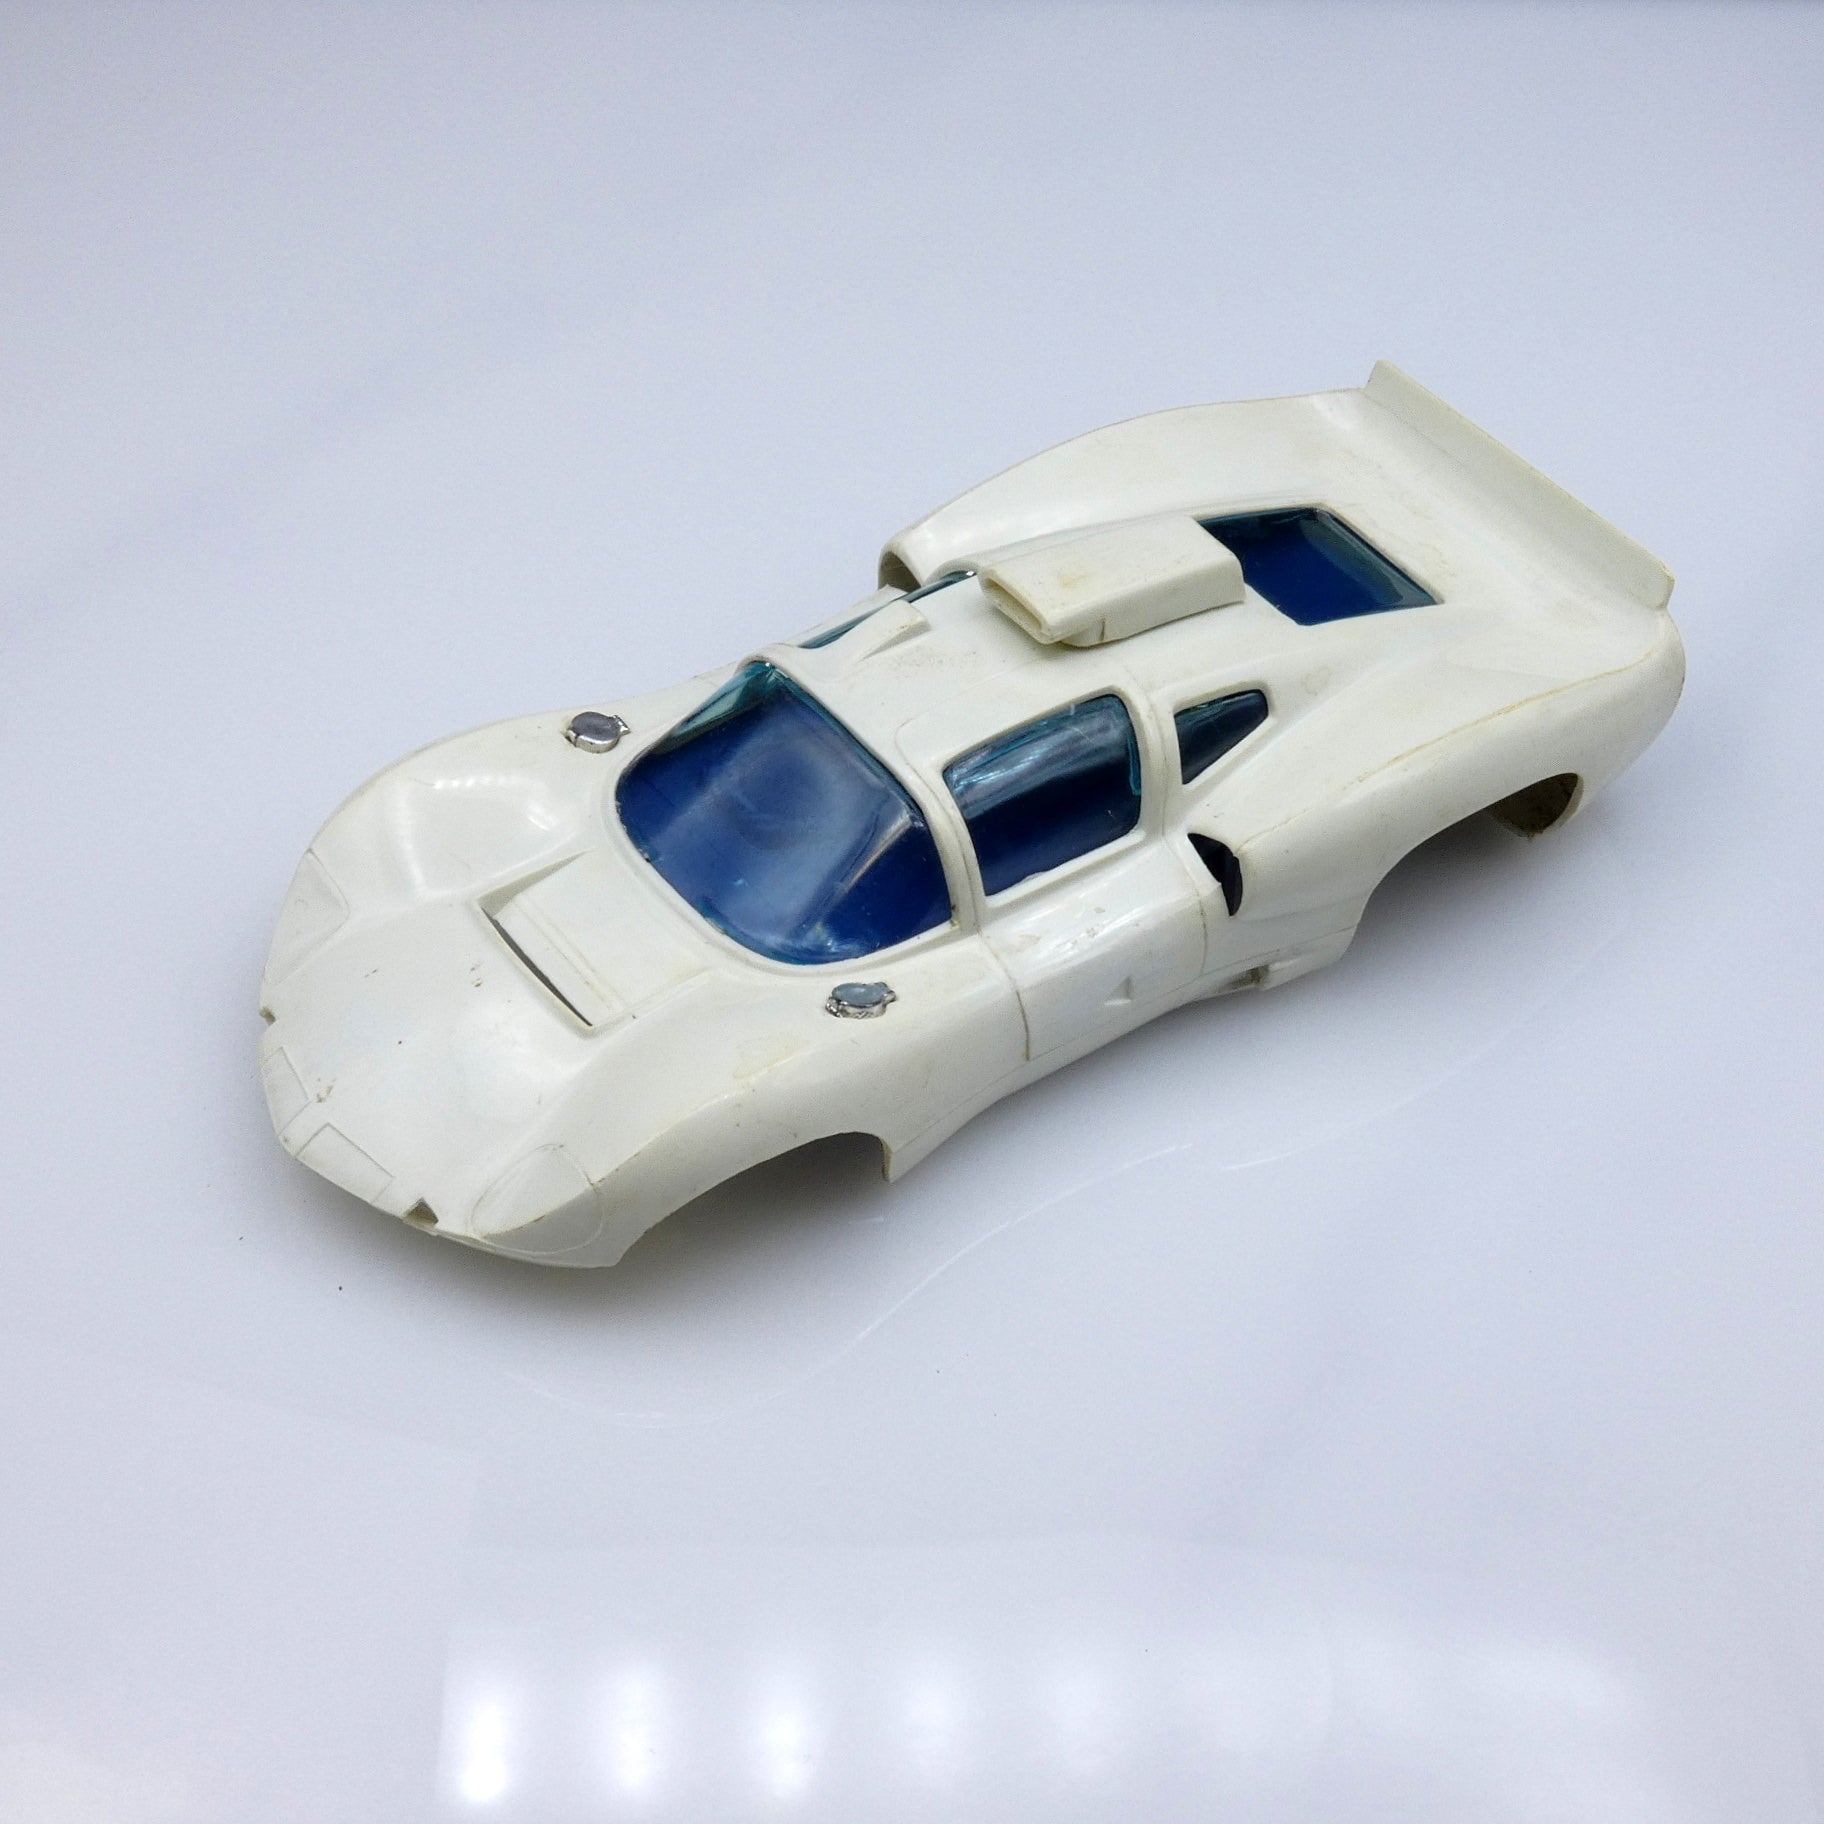 Vintage Slot Car - 1/32 1967 Chaparral 2D by Strombecker